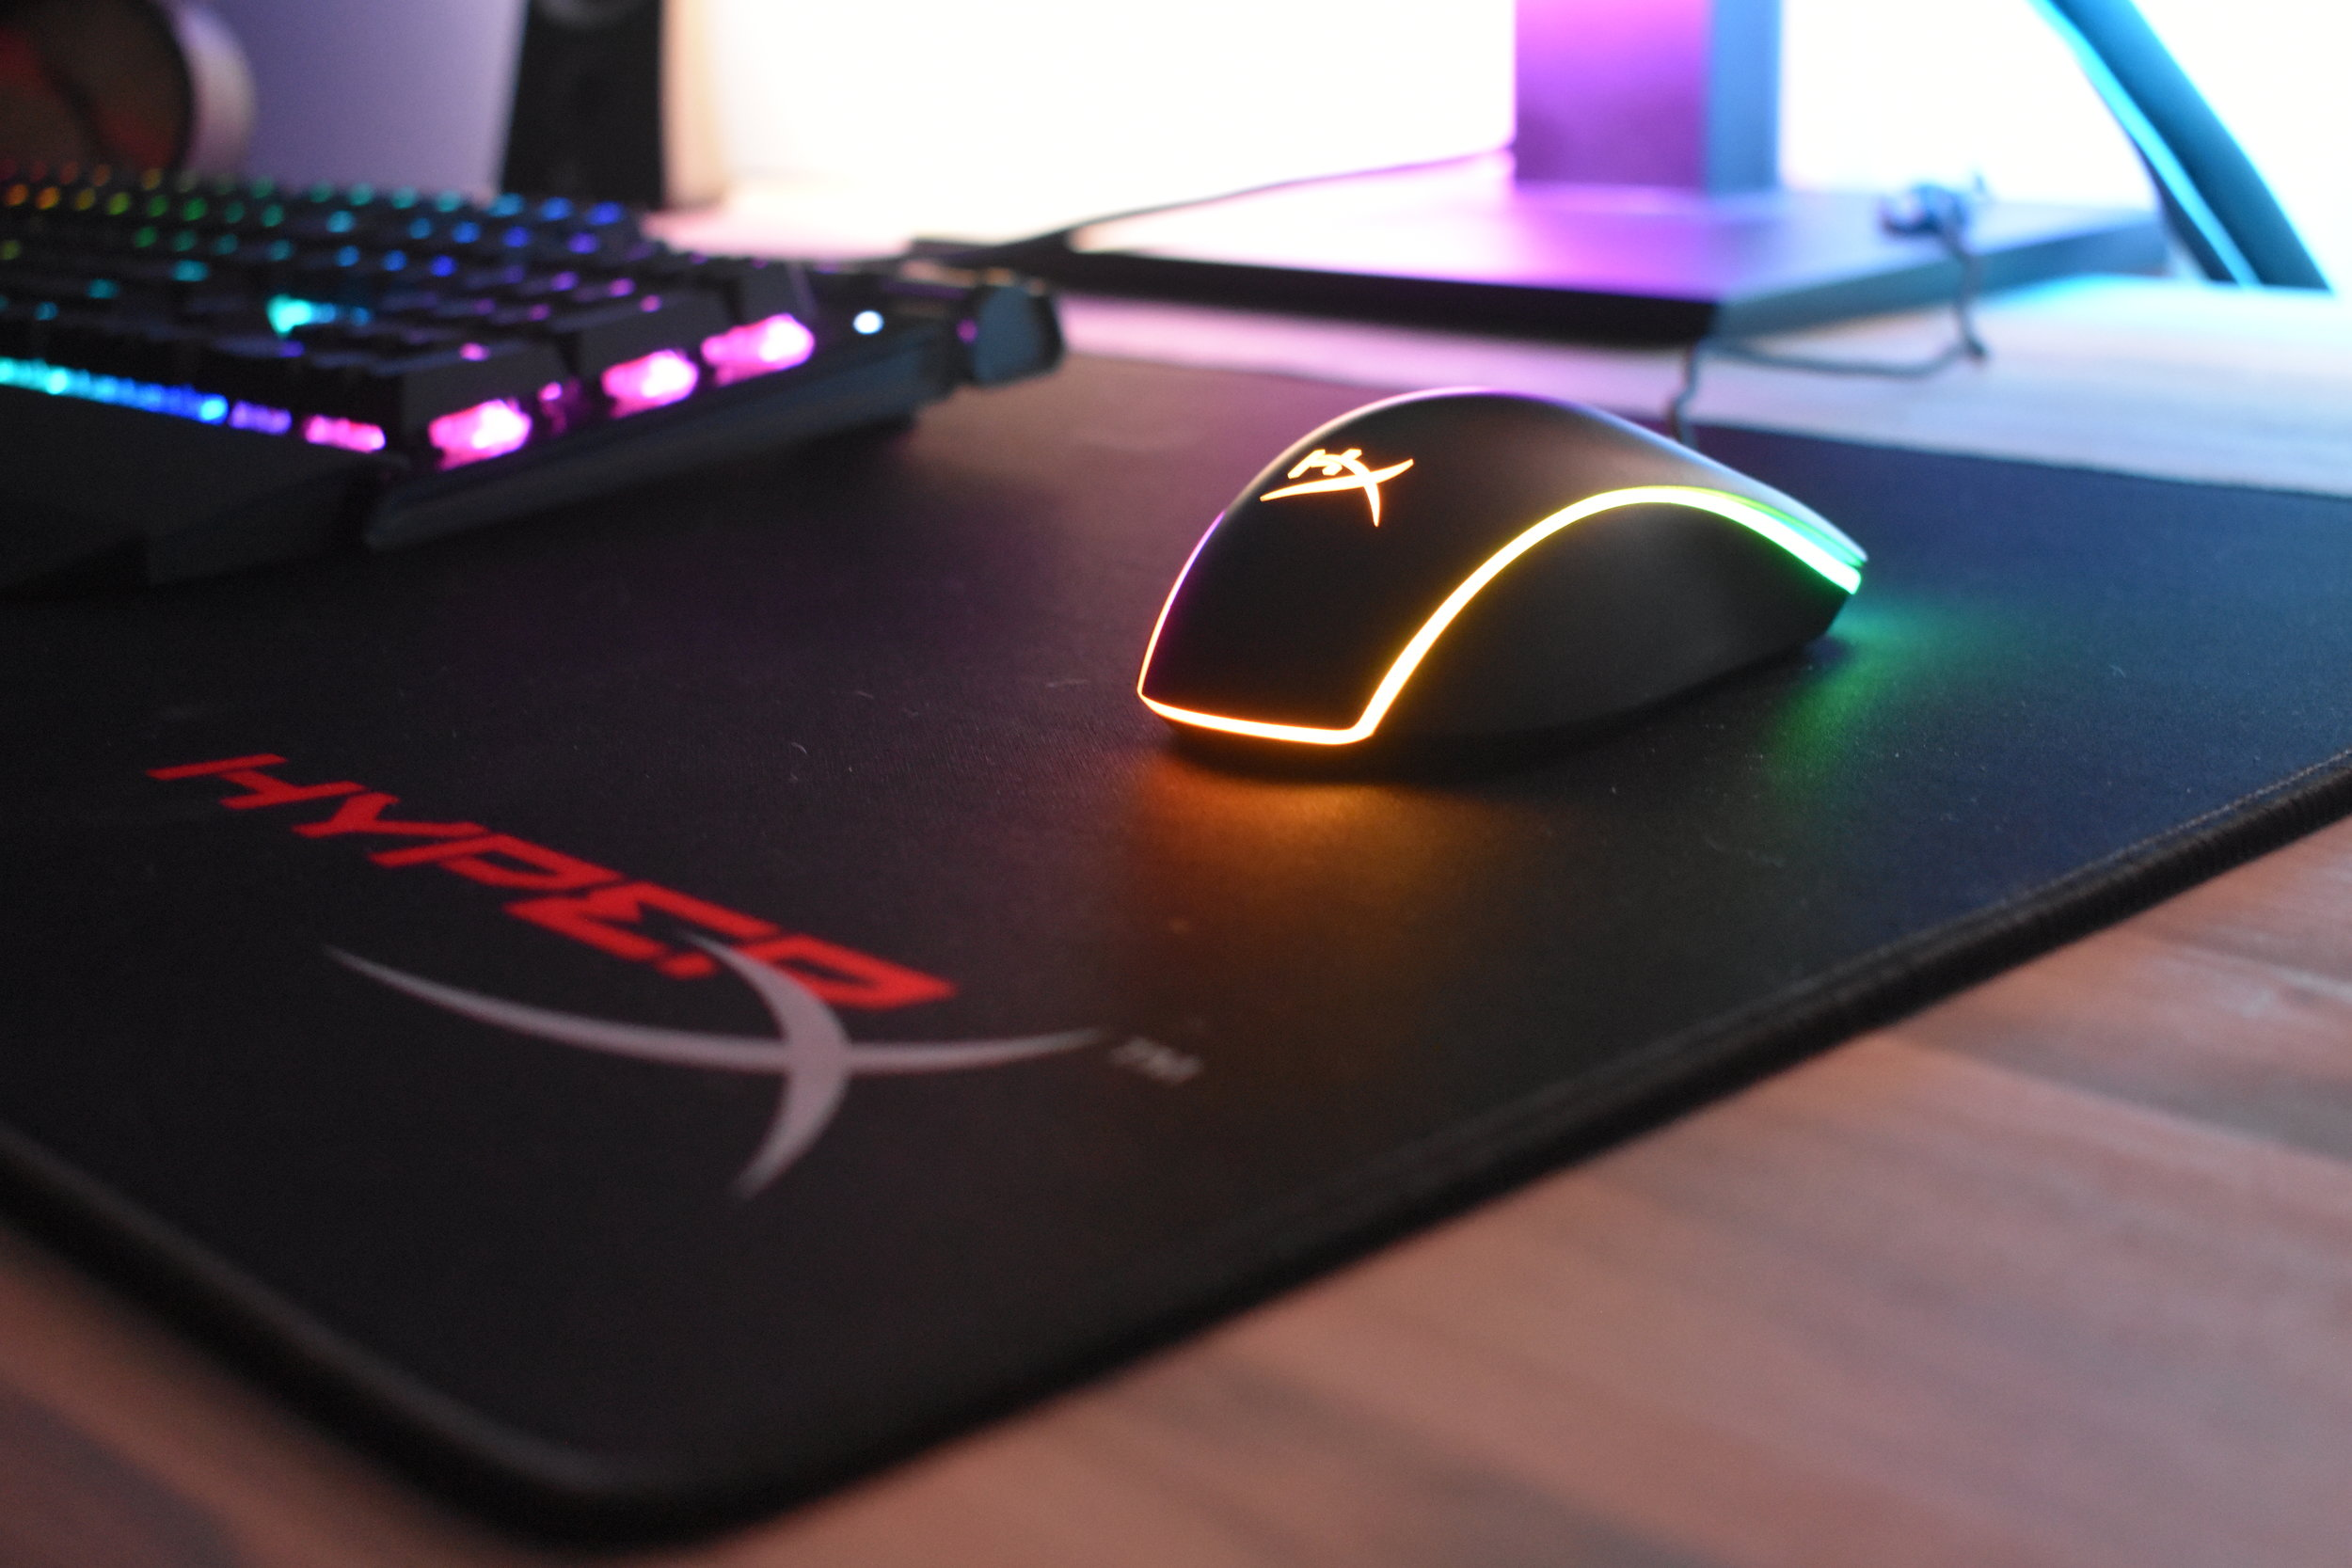 Review of HyperX Pulsefire Surge RGB Gaming Mouse